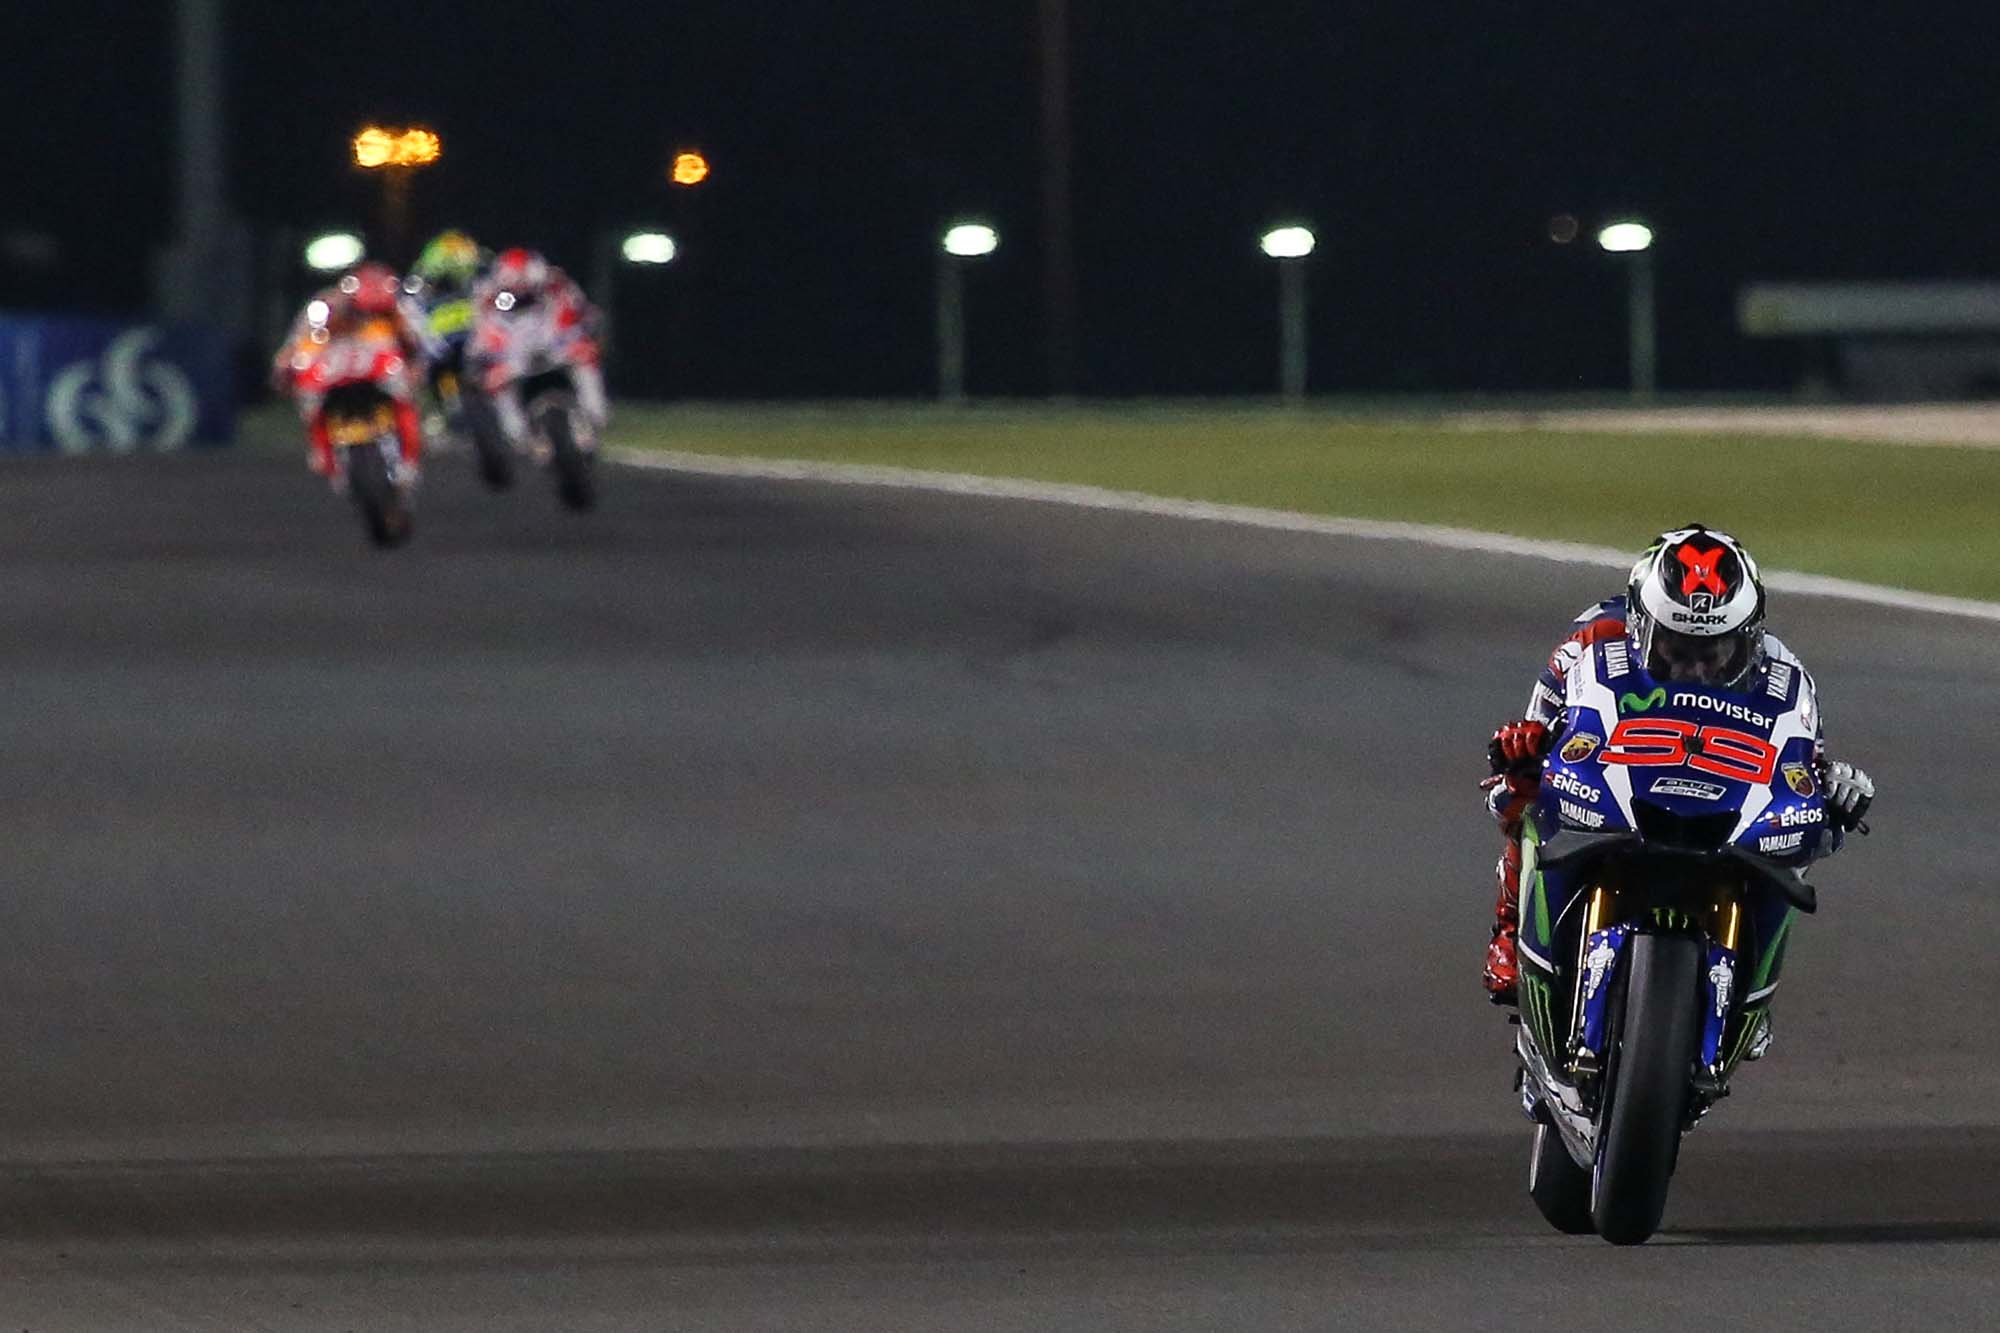 MotoGP Photos from Sunday at Qatar by CormacGP